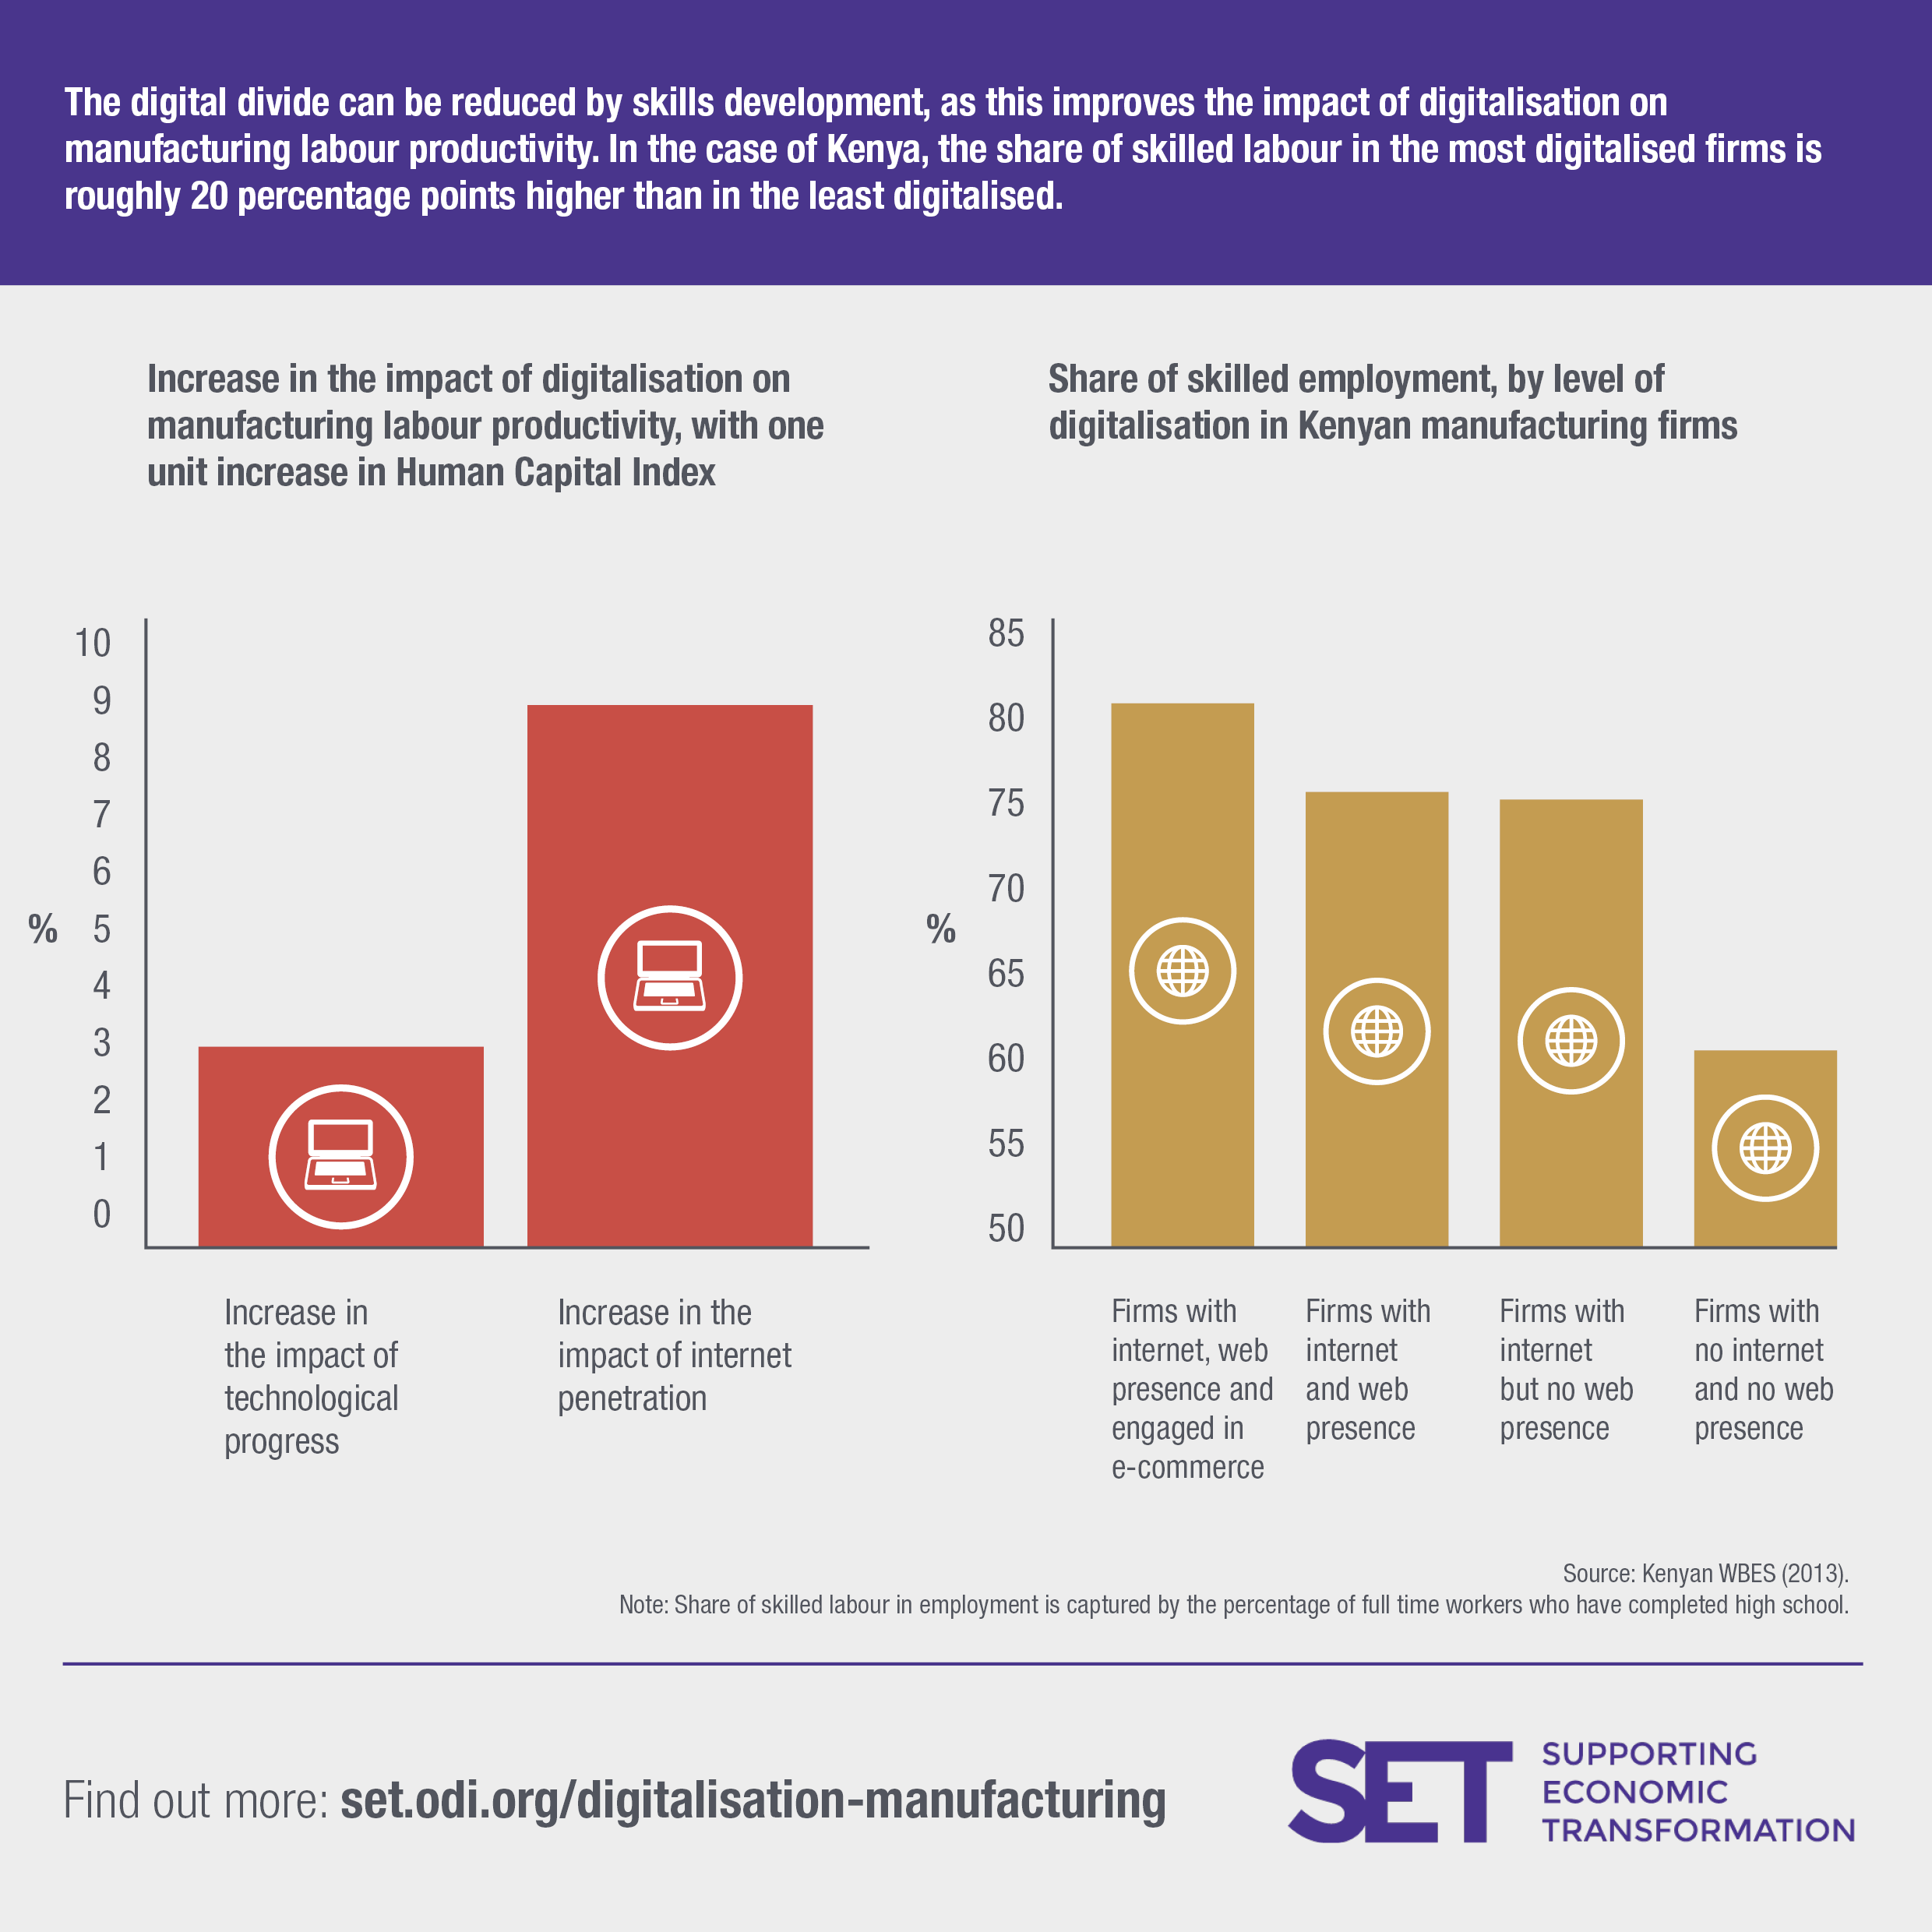 Investment in skills development will be crucial for African economies to get the most out of digitalisation. Image: SET programme